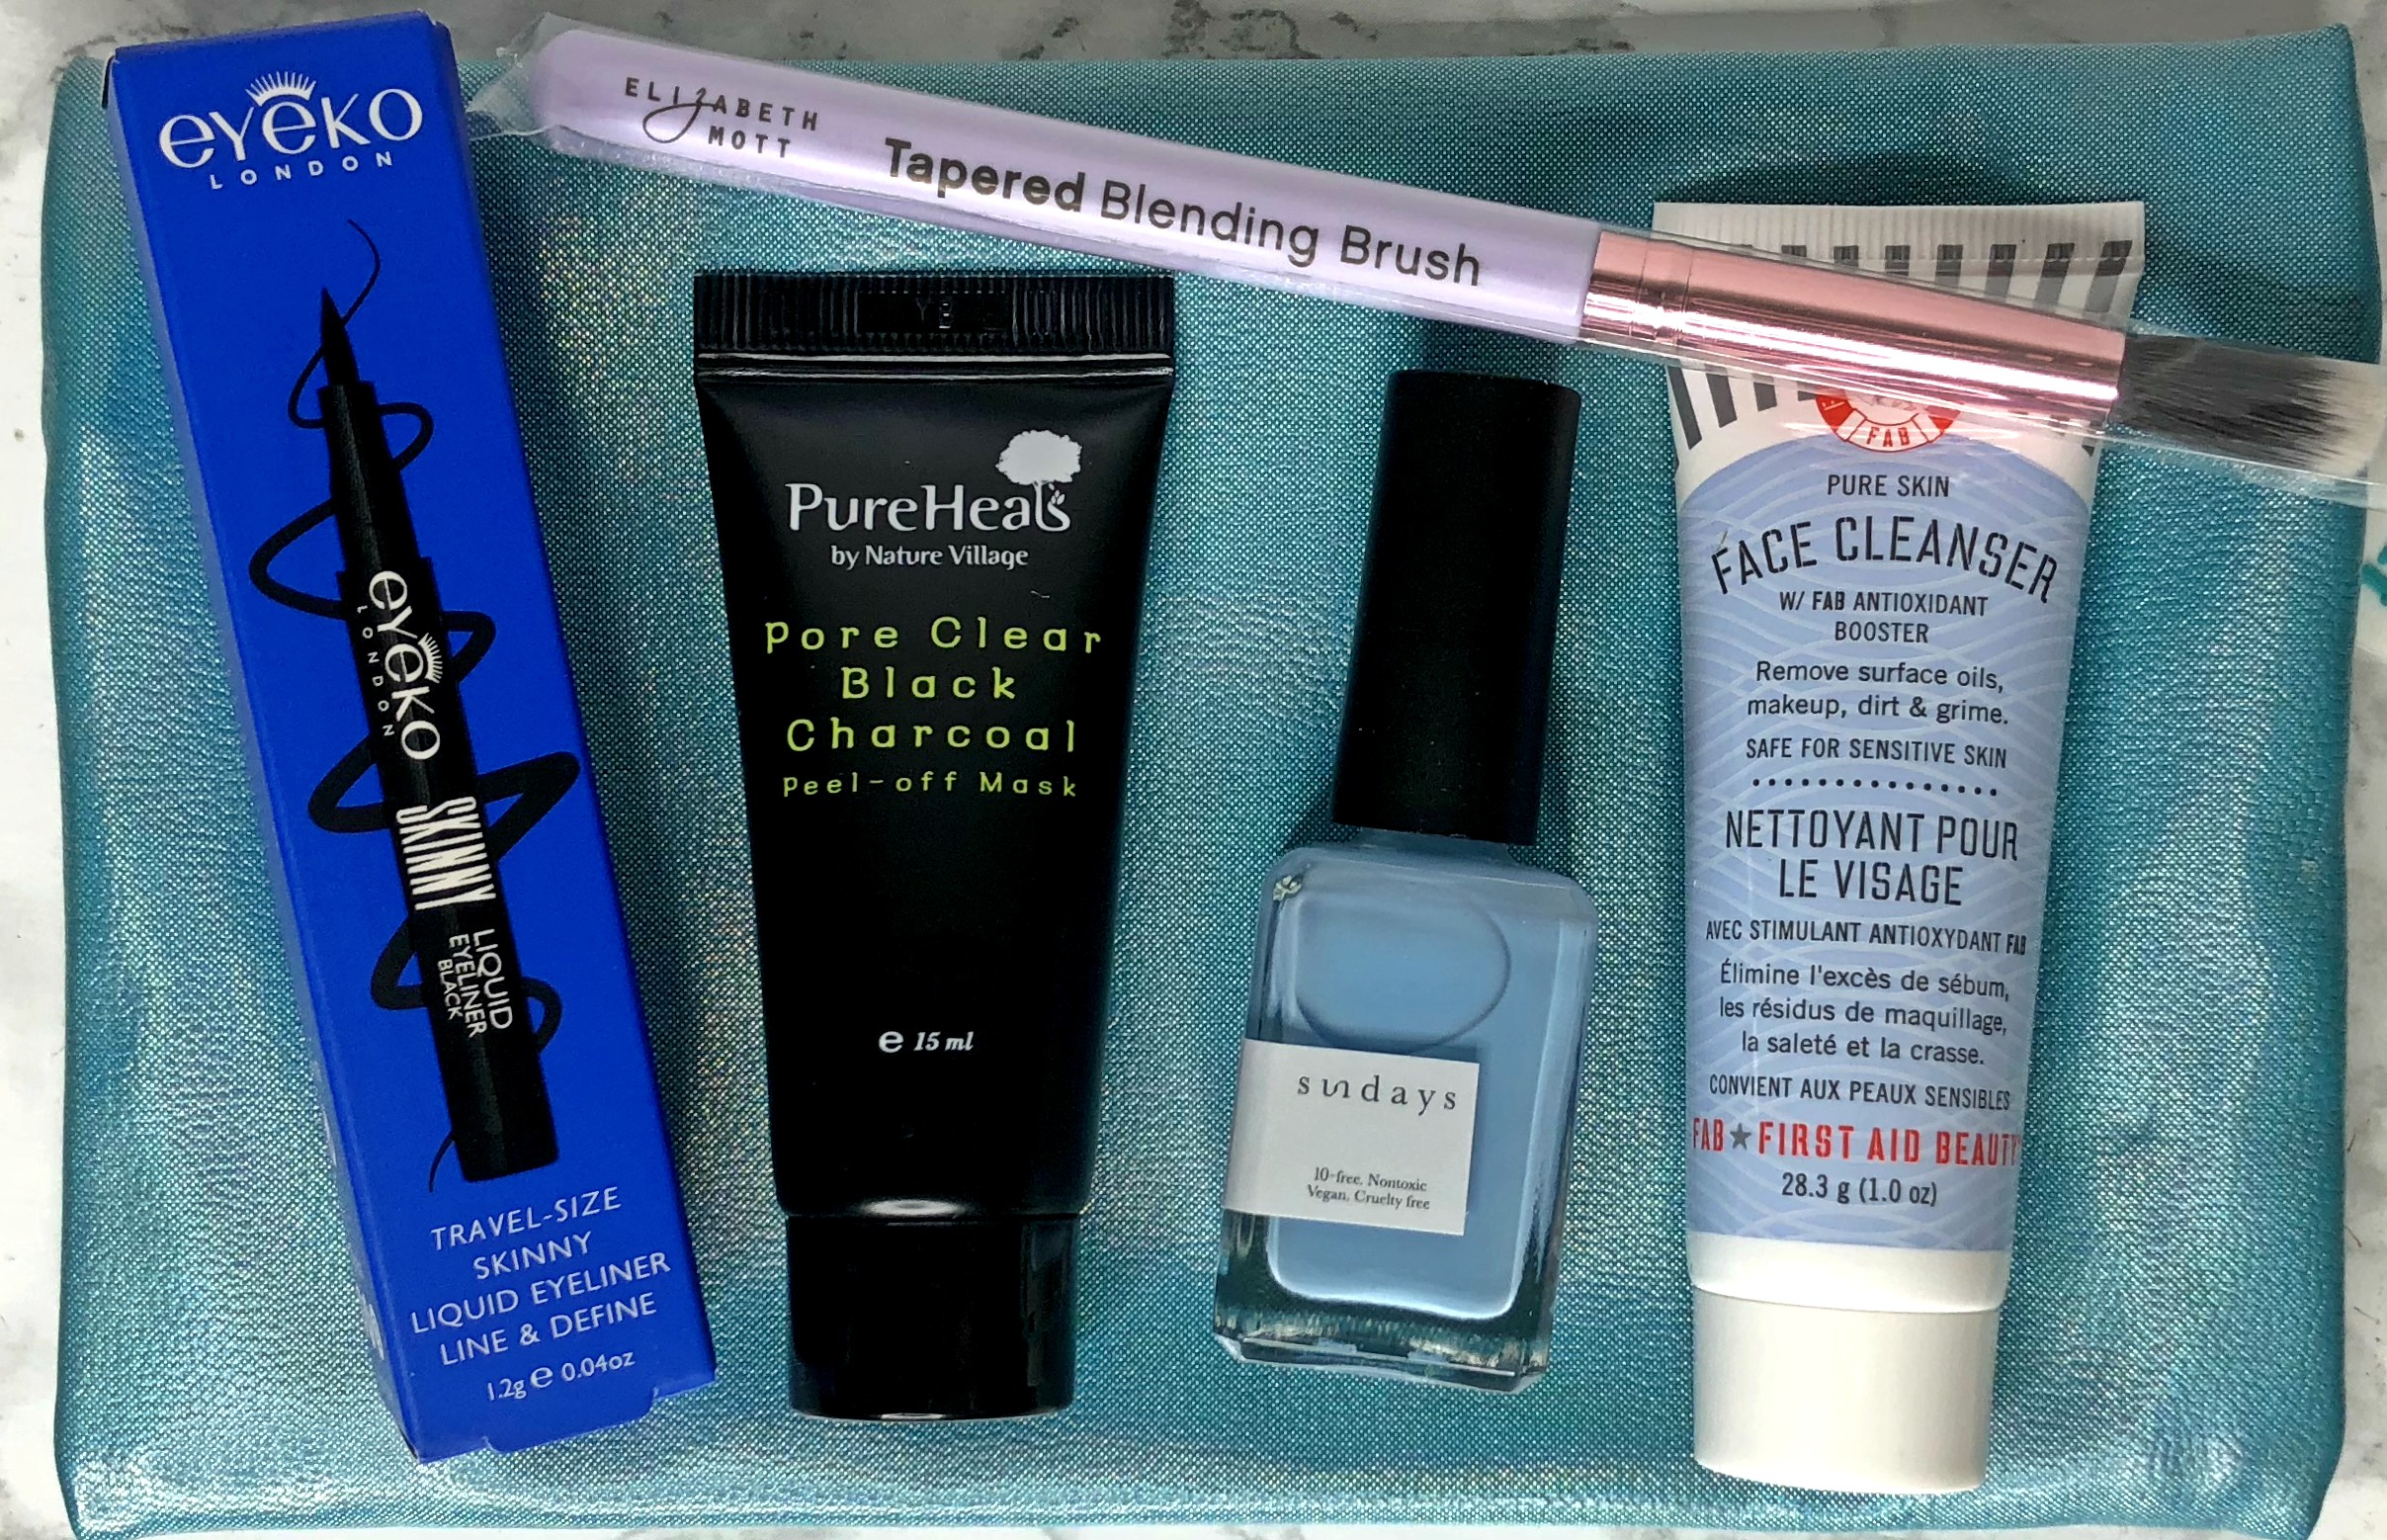 Ipsy Review - July Products